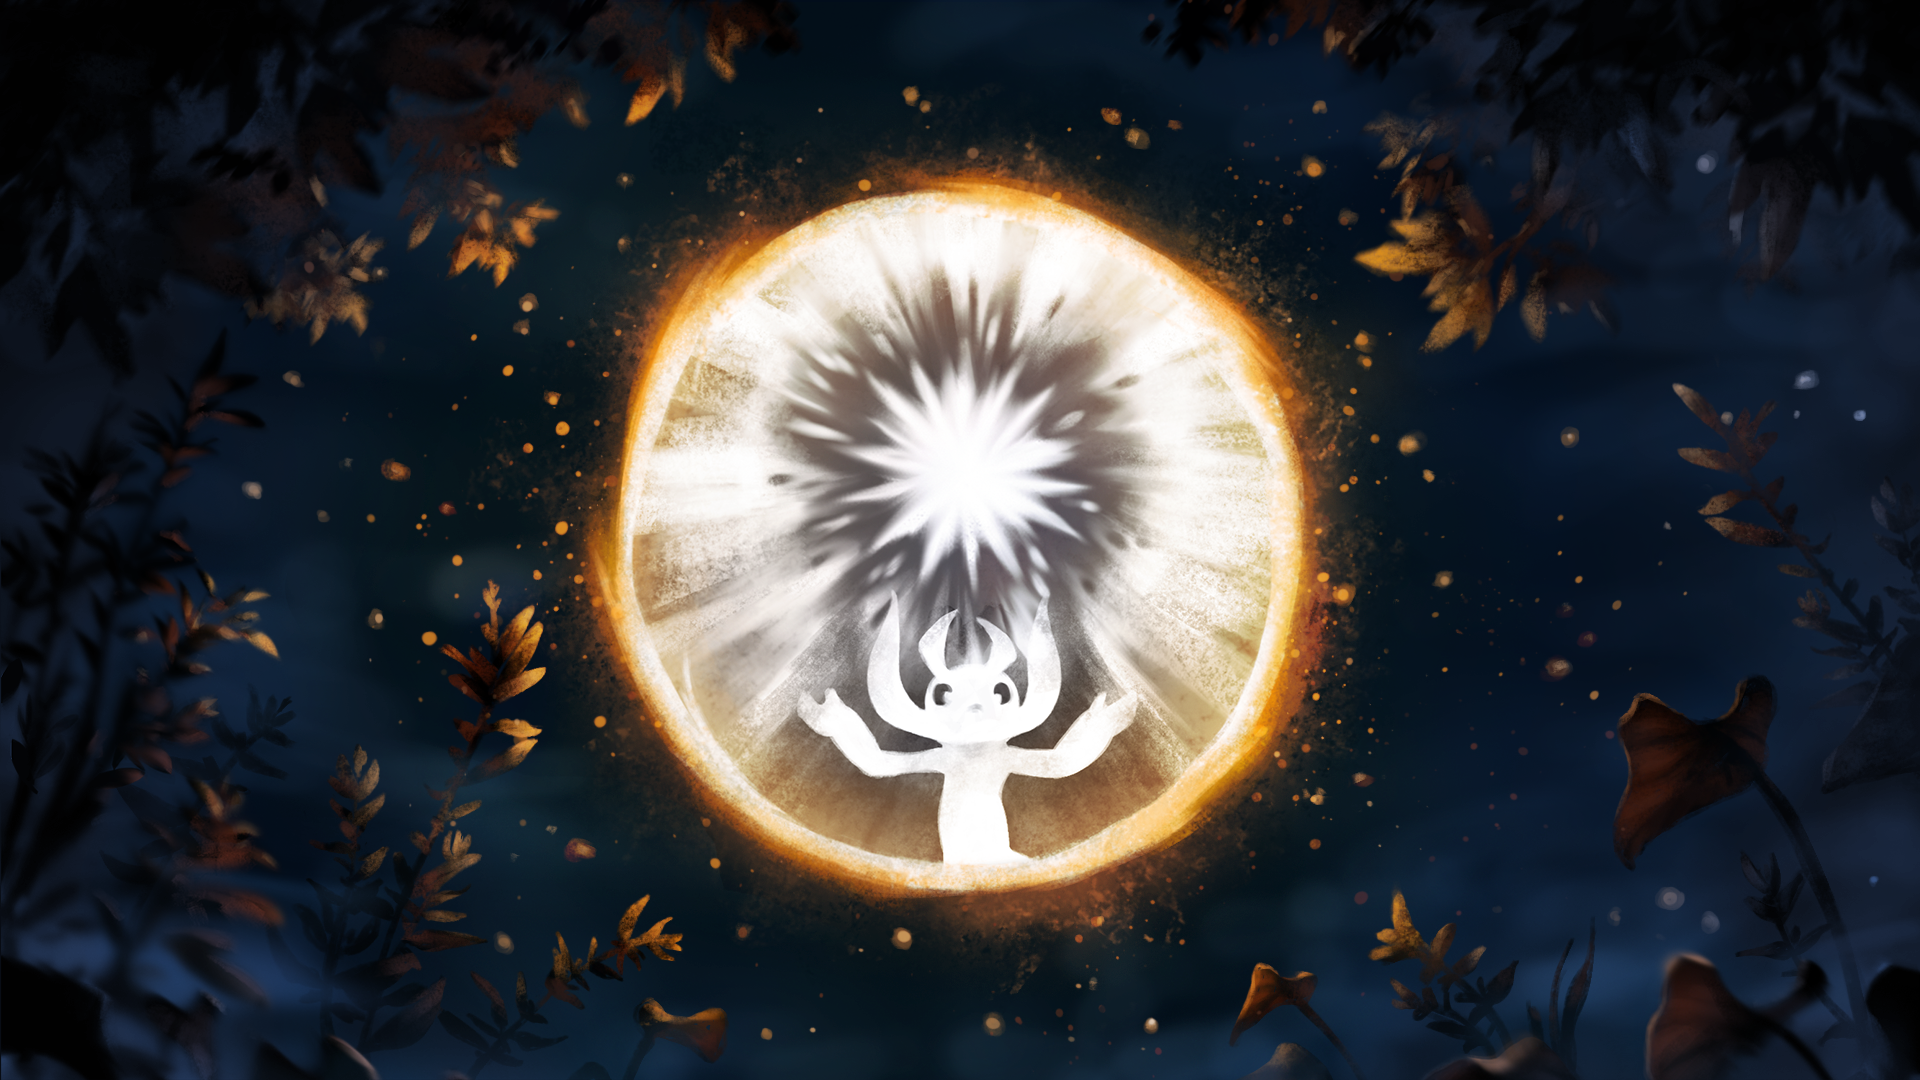 Blast Master achievement for Ori and the Blind Forest on Nintendo Switch